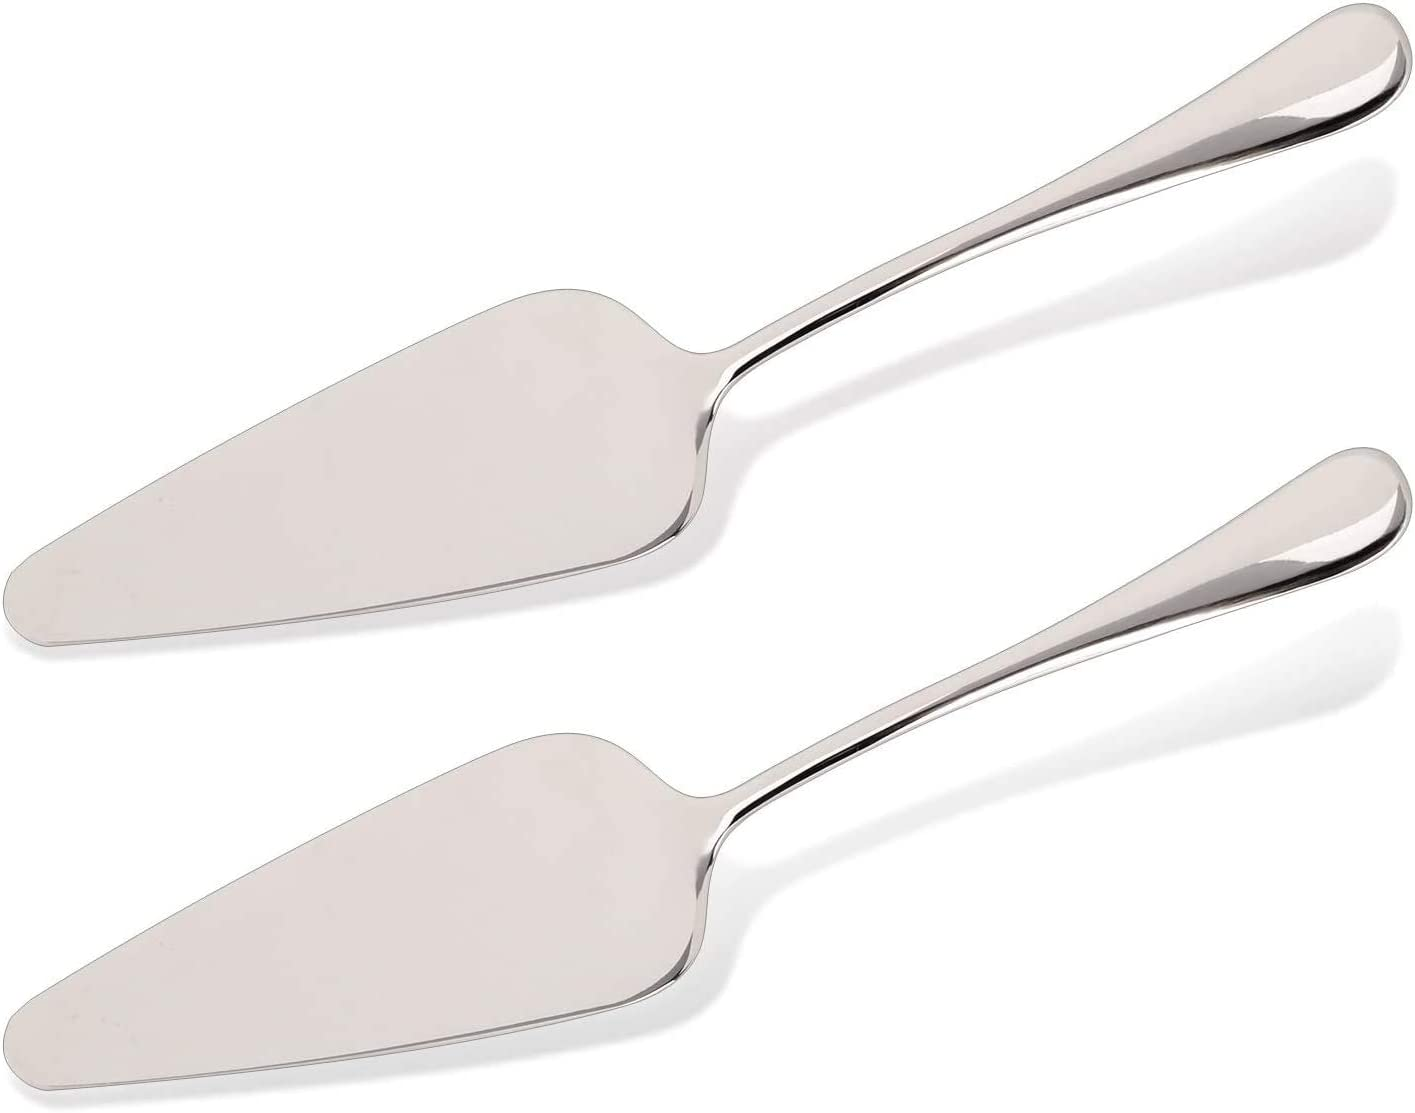 Pie Server Stainless Industry No. 1 Steel OFFicial Cake Pro Pastry of 2 Set